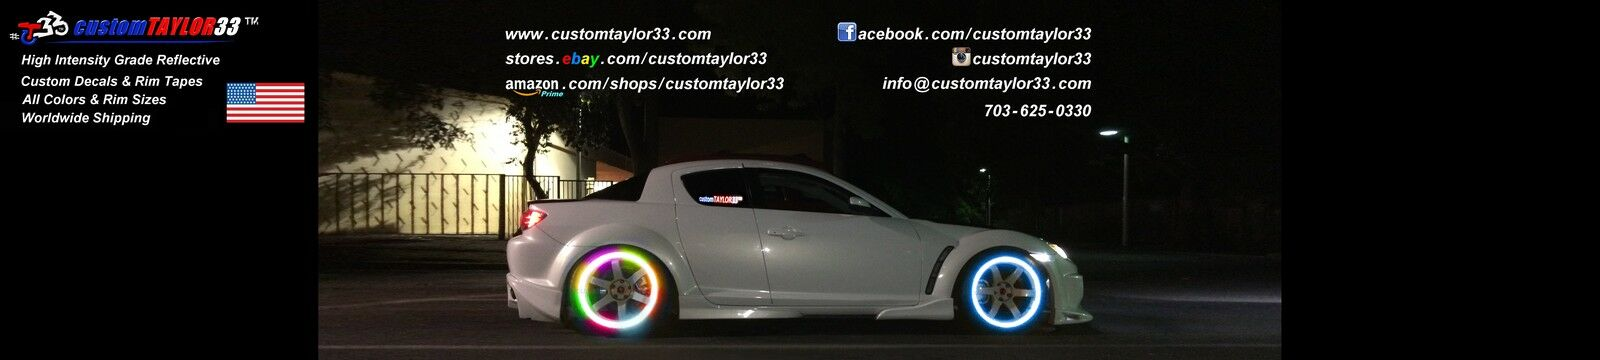 customTAYLOR33